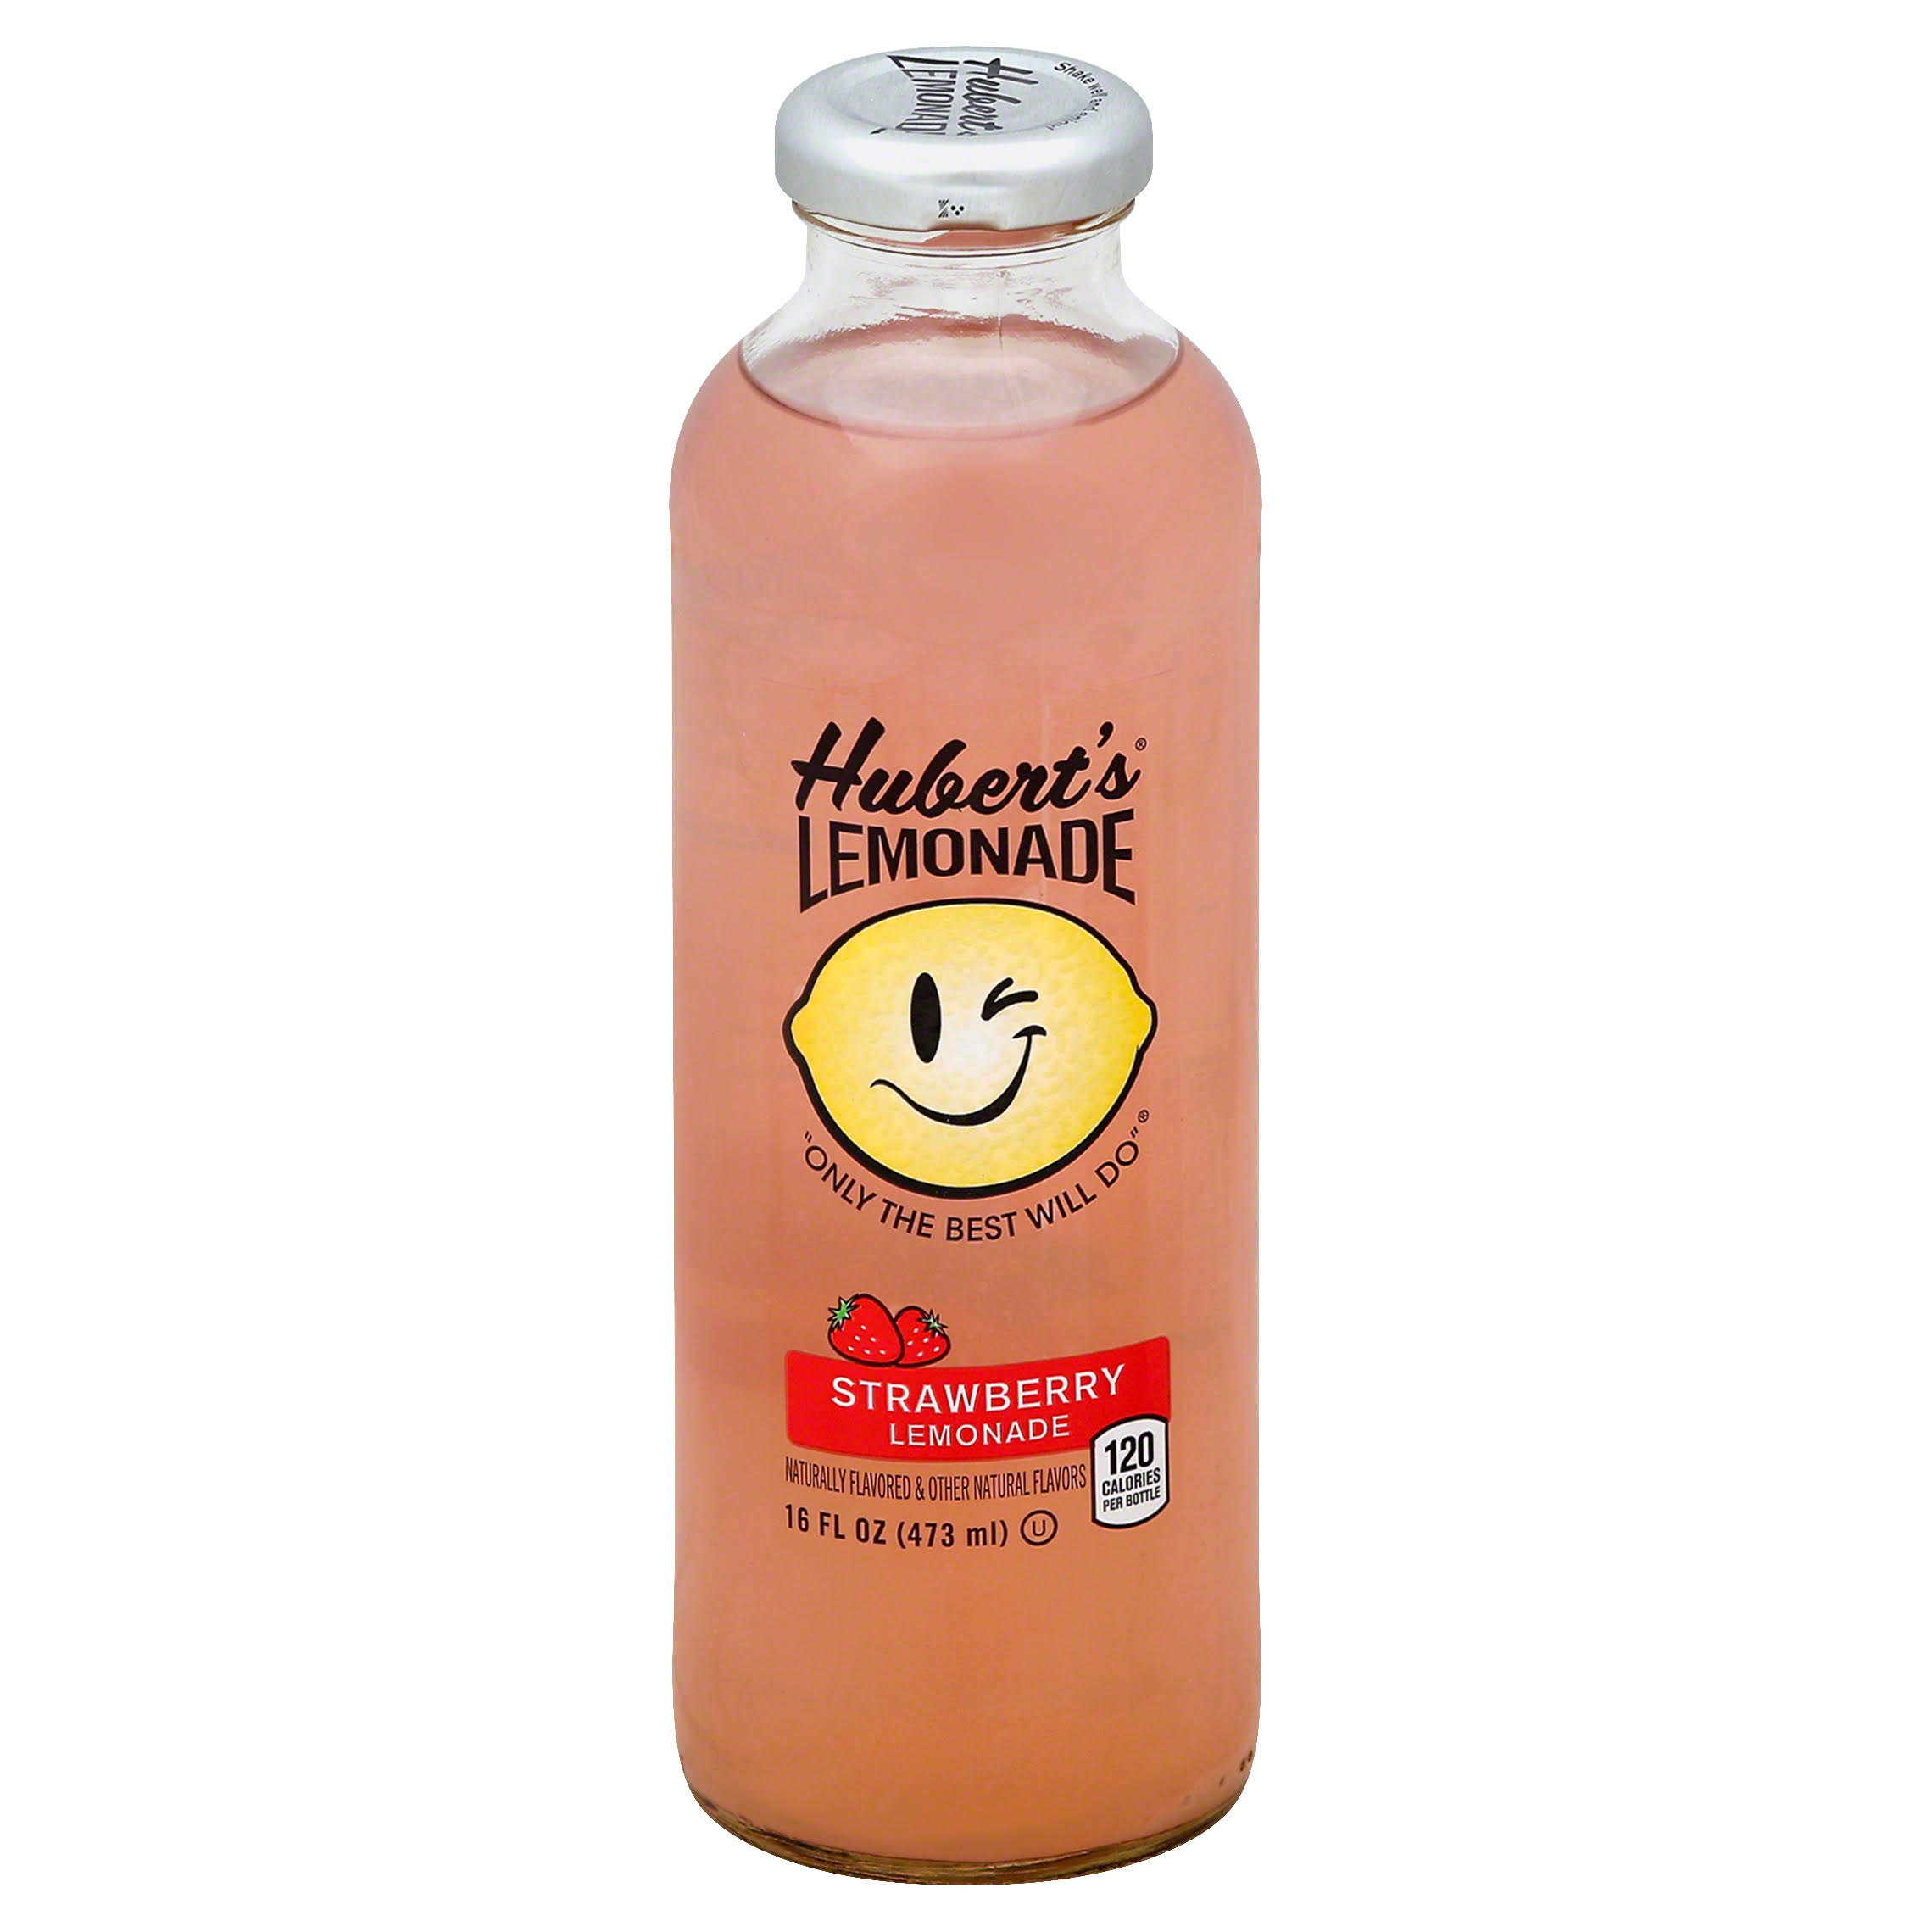 Huberts Lemonade, Strawberry - 16 fl oz